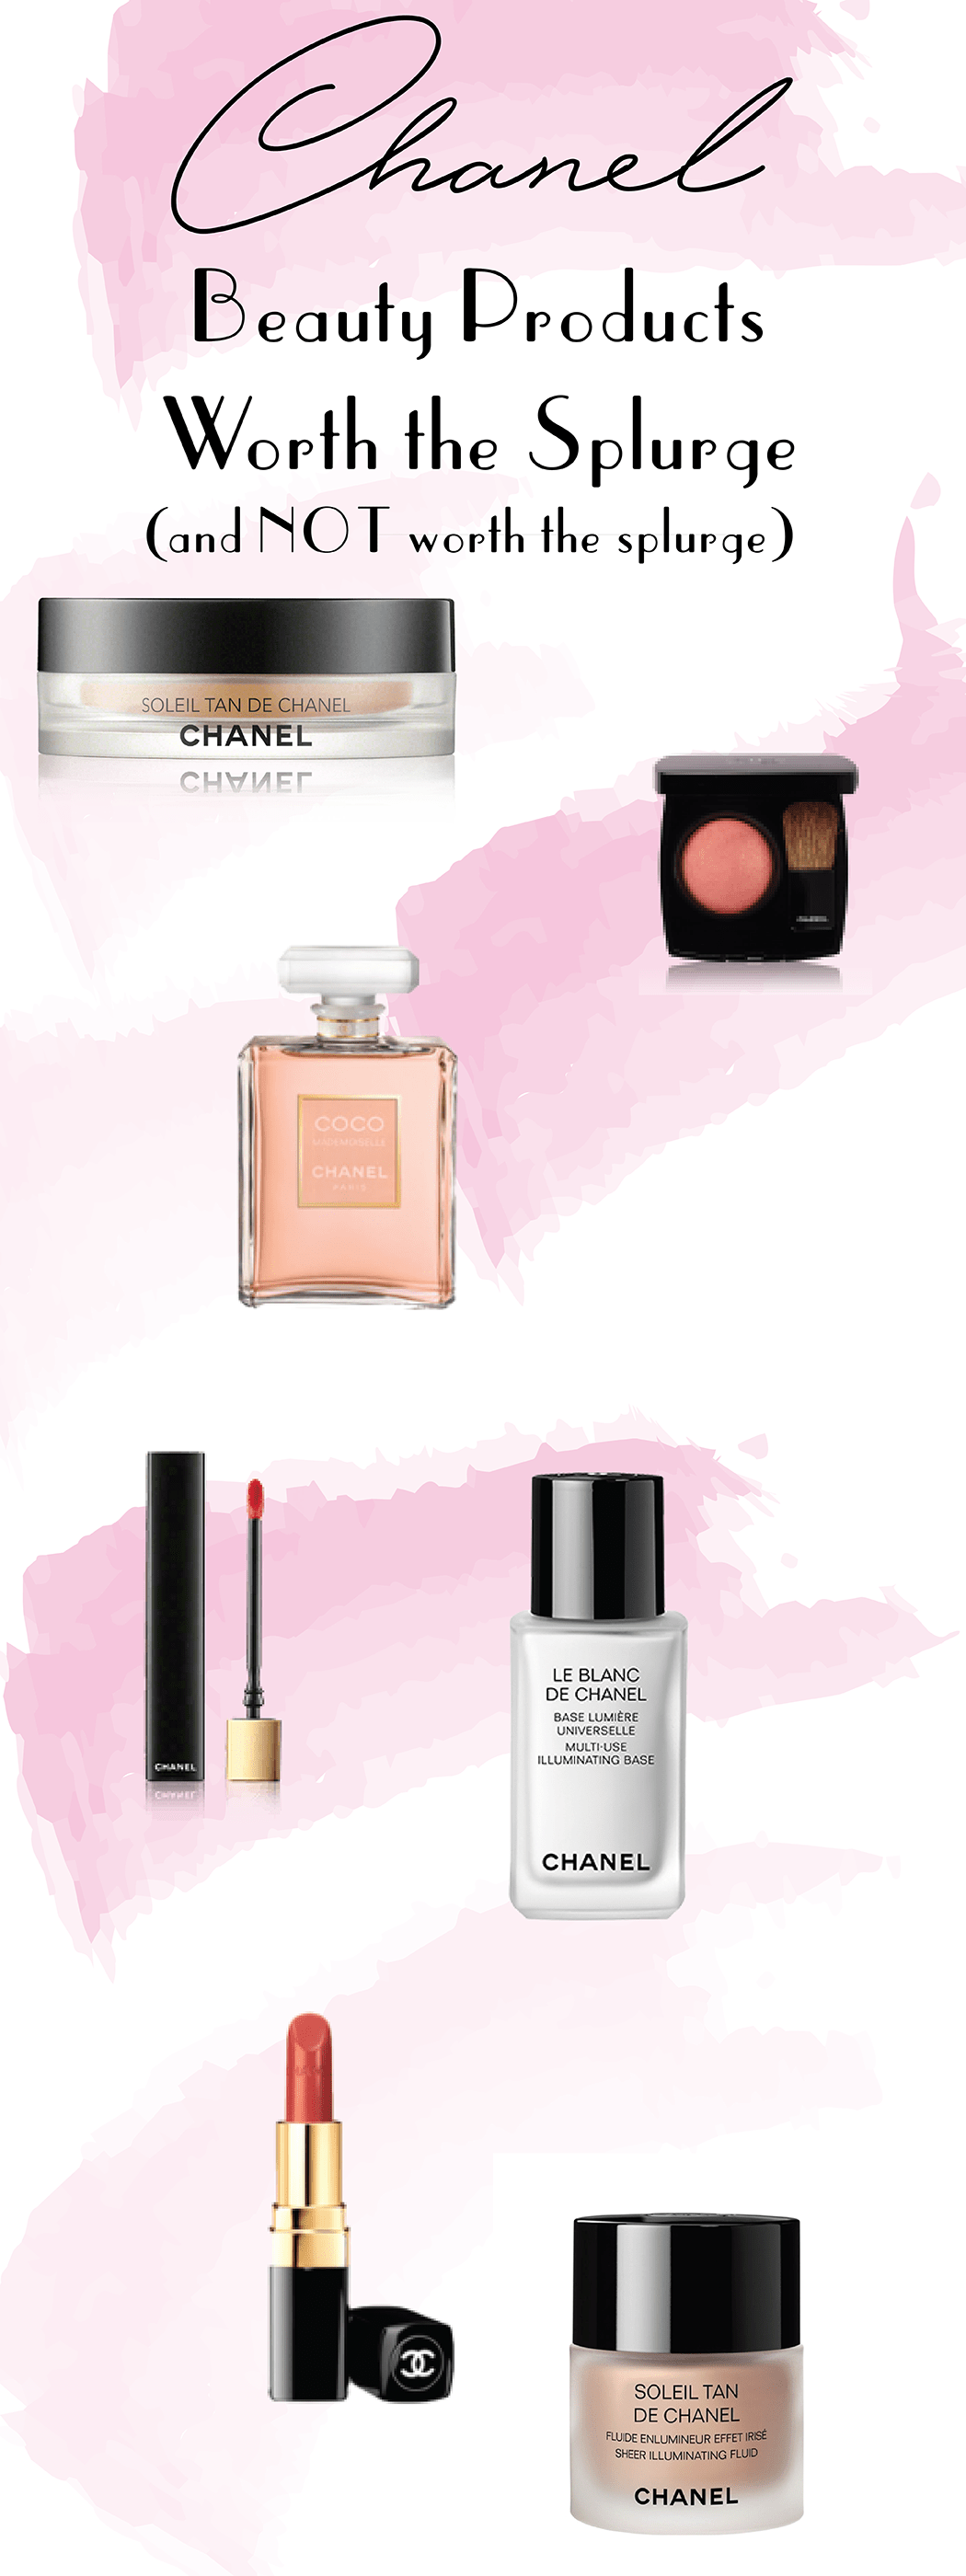 Chanel beauty products worth the splurge and Chanel beauty products not worth the splurge including Coco Mademoiselle perfume, Rouge CoCo lipstick, Rouge Allure Gloss, Soleil Tan De Chanel bronzer, Soleil Tan de Chanel Fluid, Chanel le blanc de chanel base